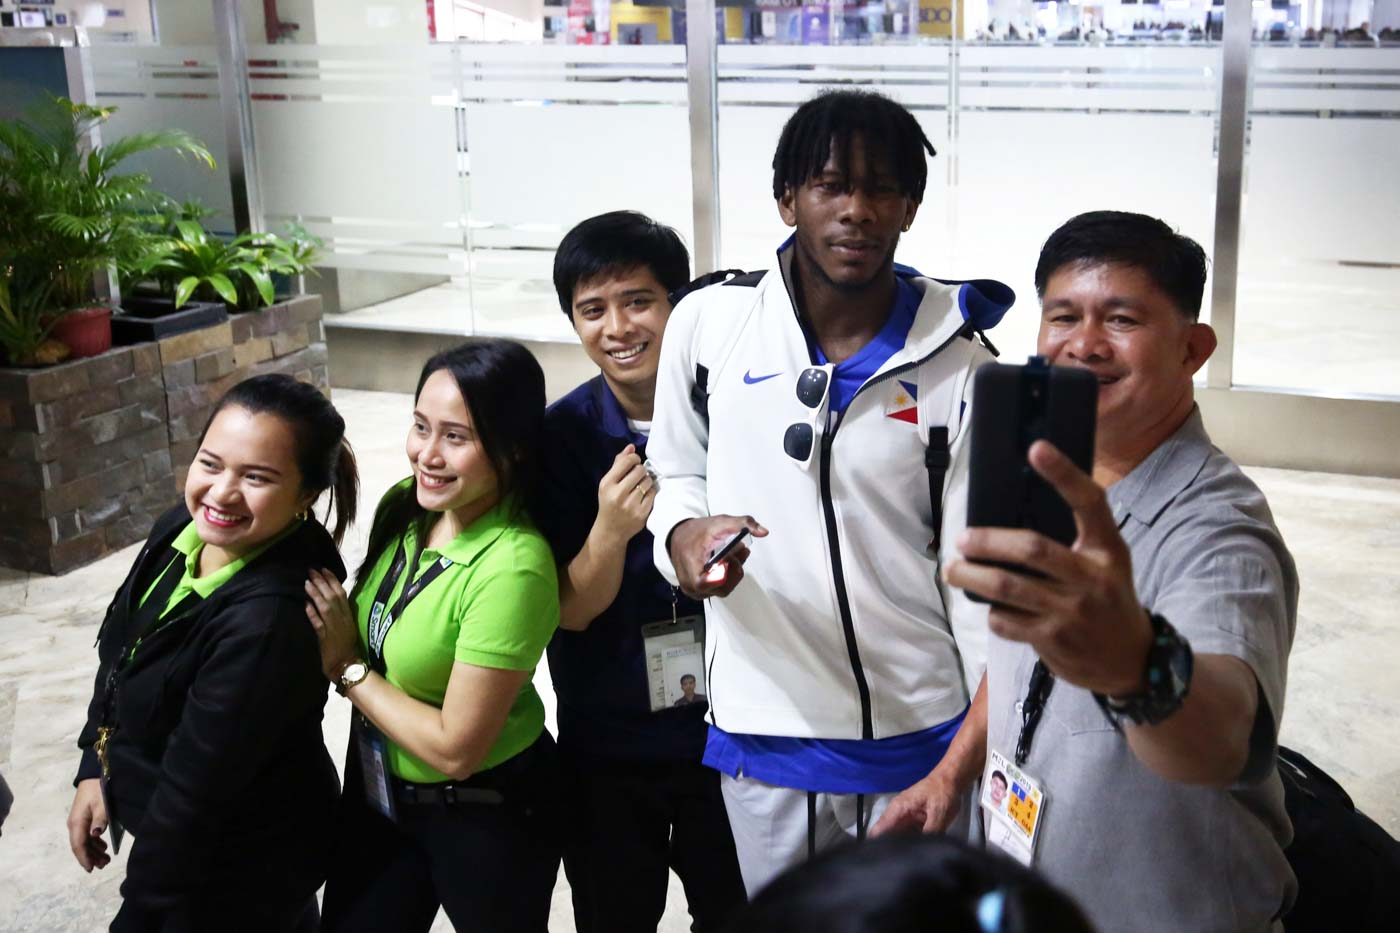 FAN FAVORITE. Cjay Perez is surrounded with fans after his key contributions in the Philippines' short-live 2019 FIBA World Cup stint. Photo By Ben Nabong/Rappler